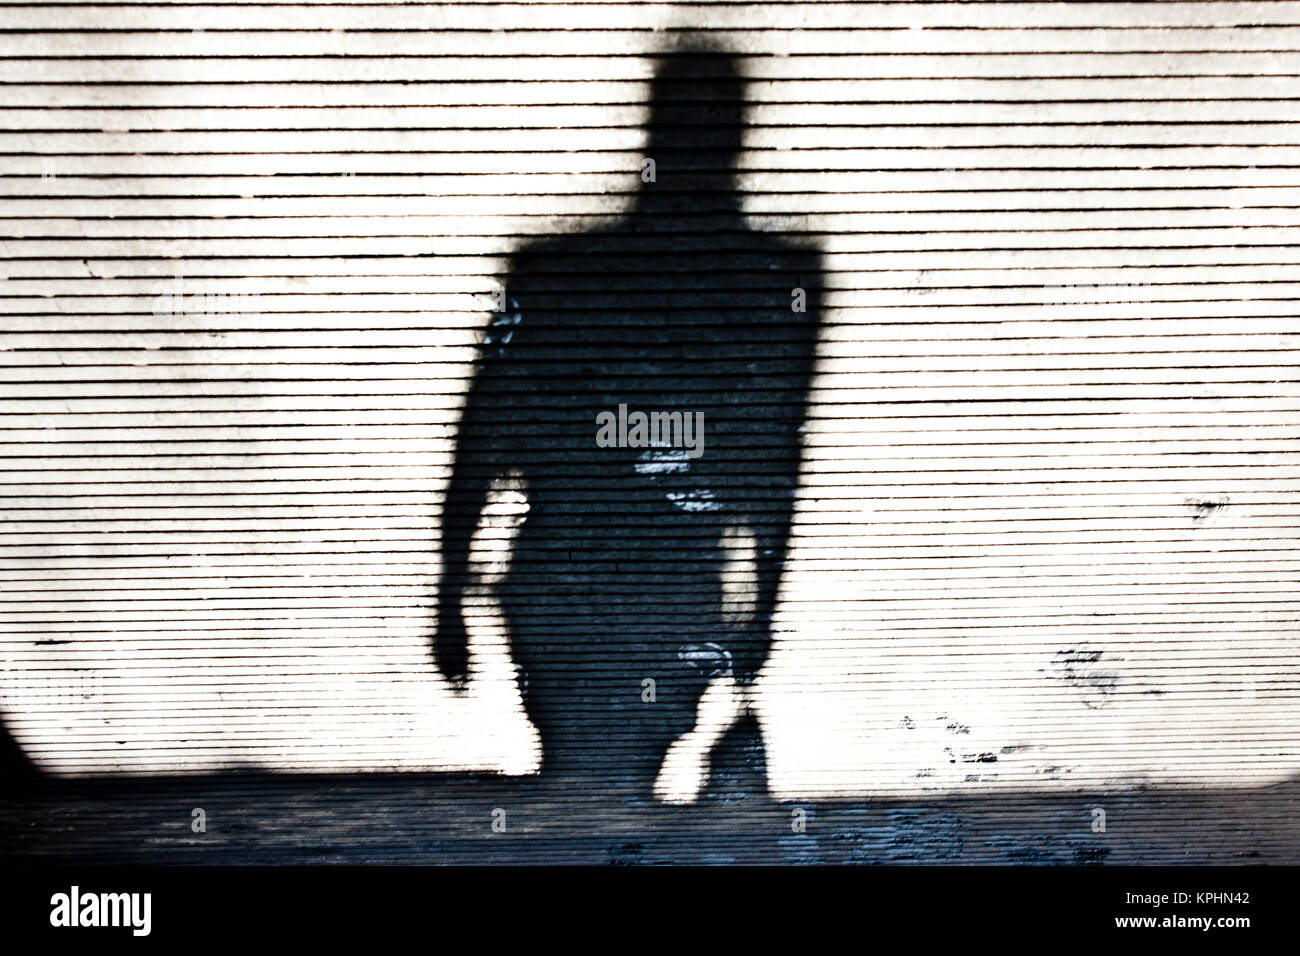 Blurry shadow of a person walking - Stock Image